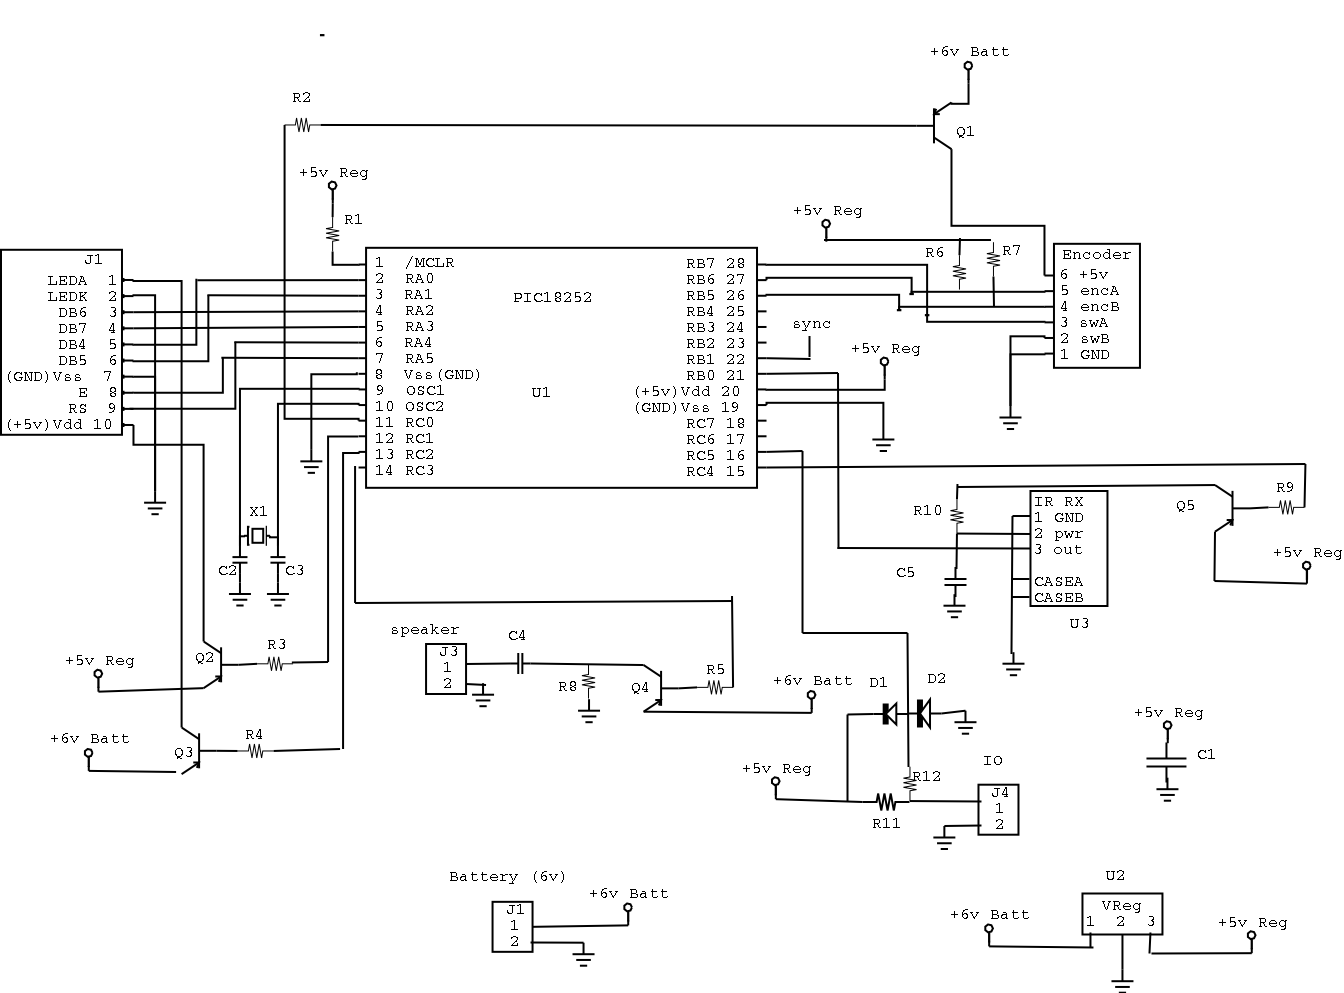 here is the circuit schematic for the board